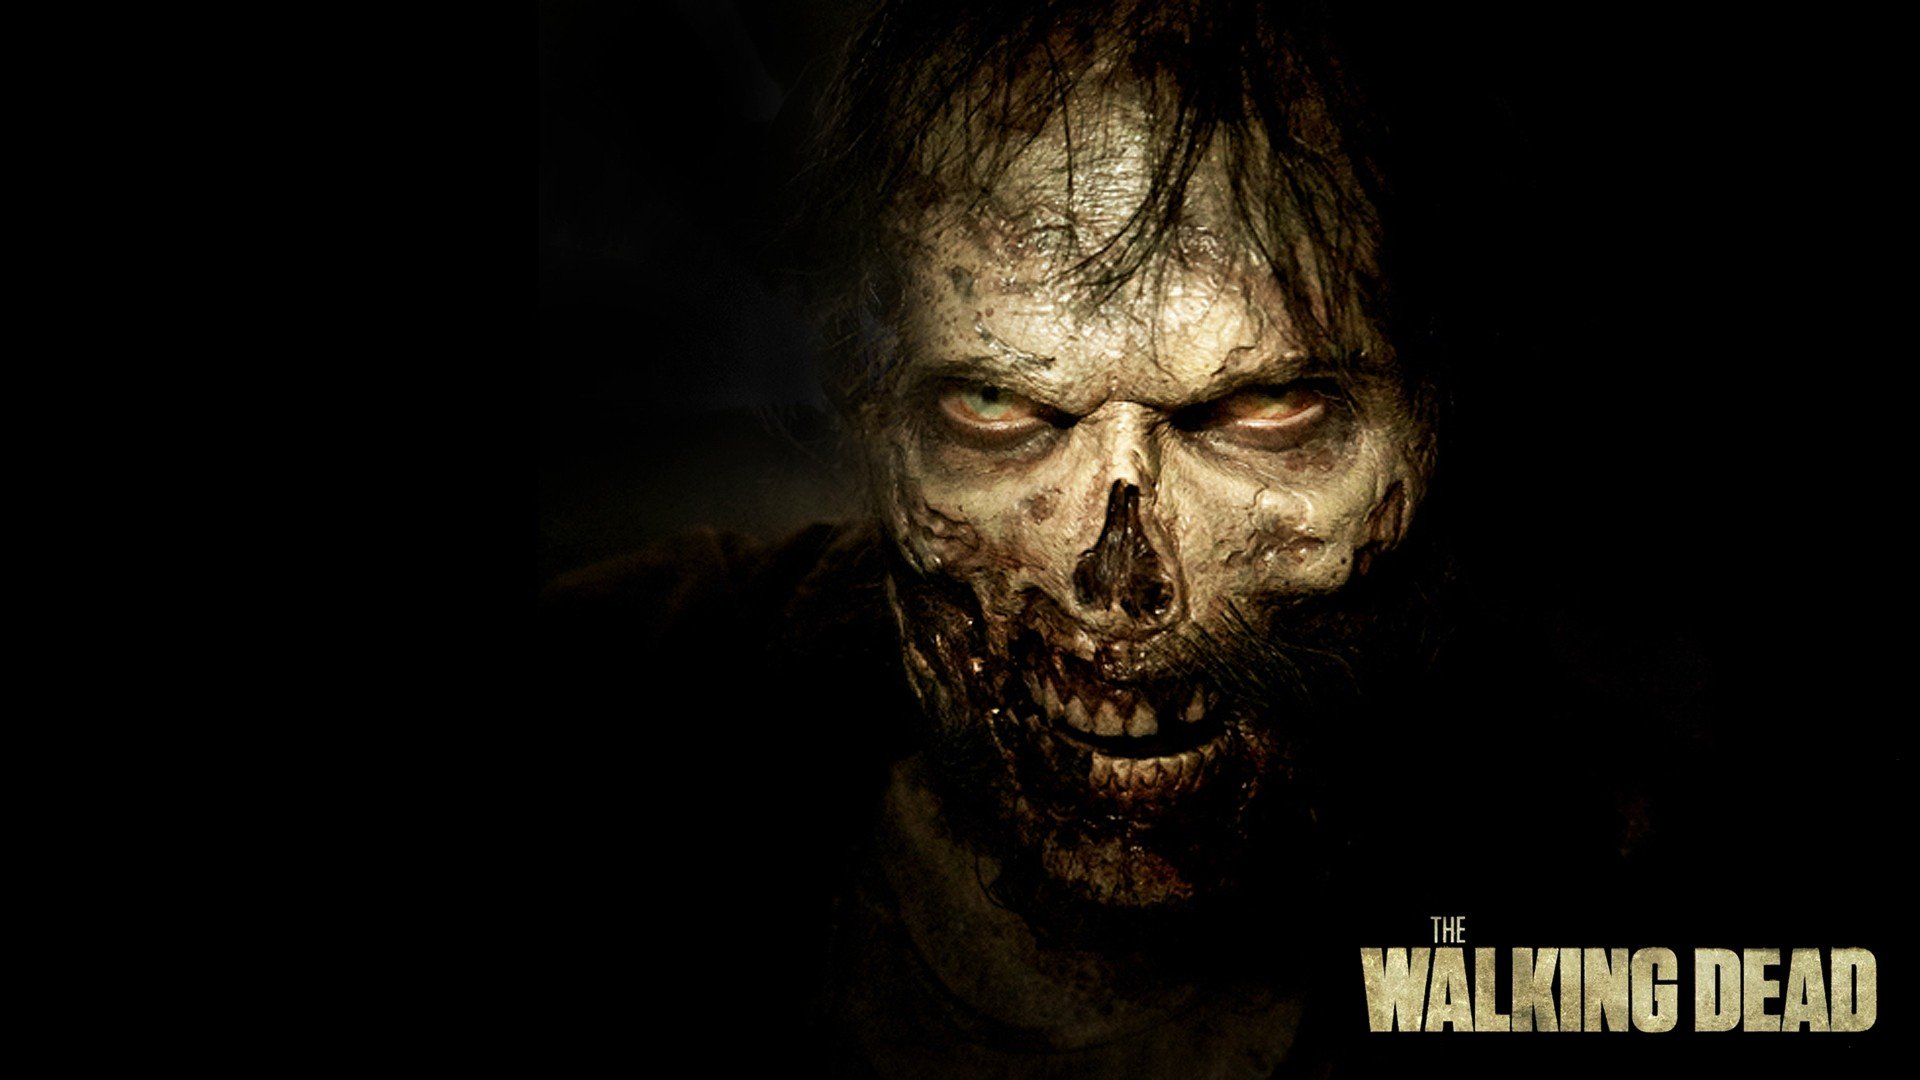 the walking dead hd wallpaper | 1920x1080 | gludy